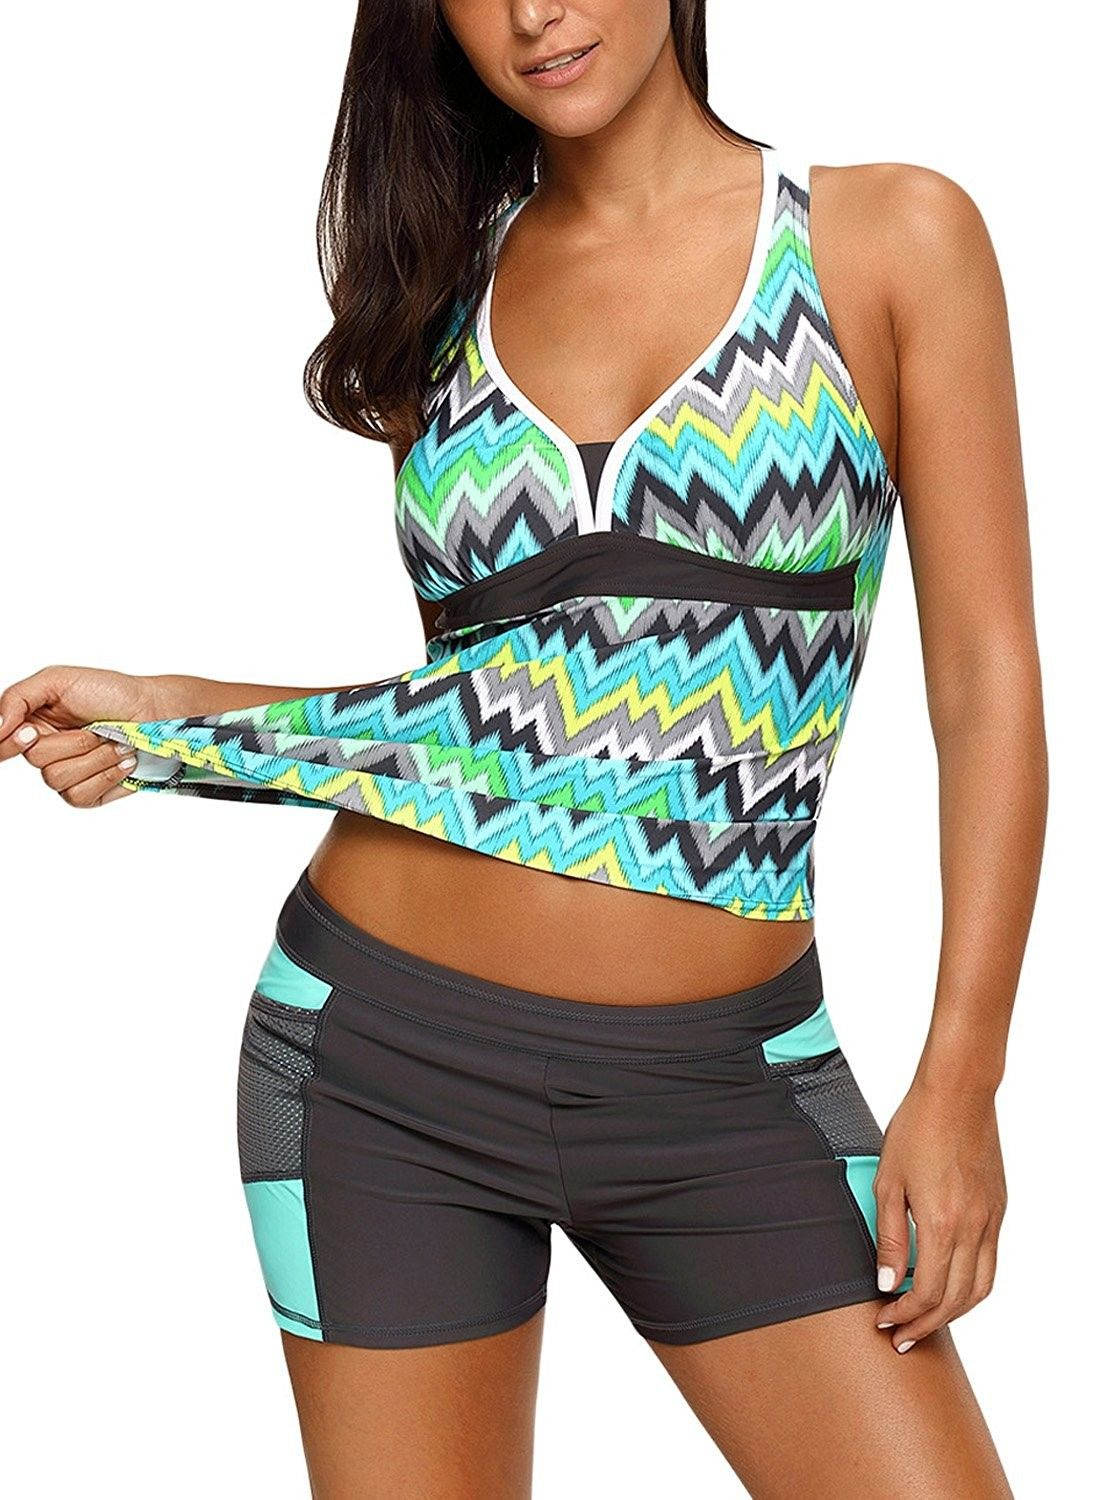 efe53bc557 Women's Clothing, Swimsuits & Cover Ups, Tankinis, Womens Color Block  Printed Racerback Tankini Swimsuits With Shorts - Green - CV188Q8CDC9  #women #fashion ...